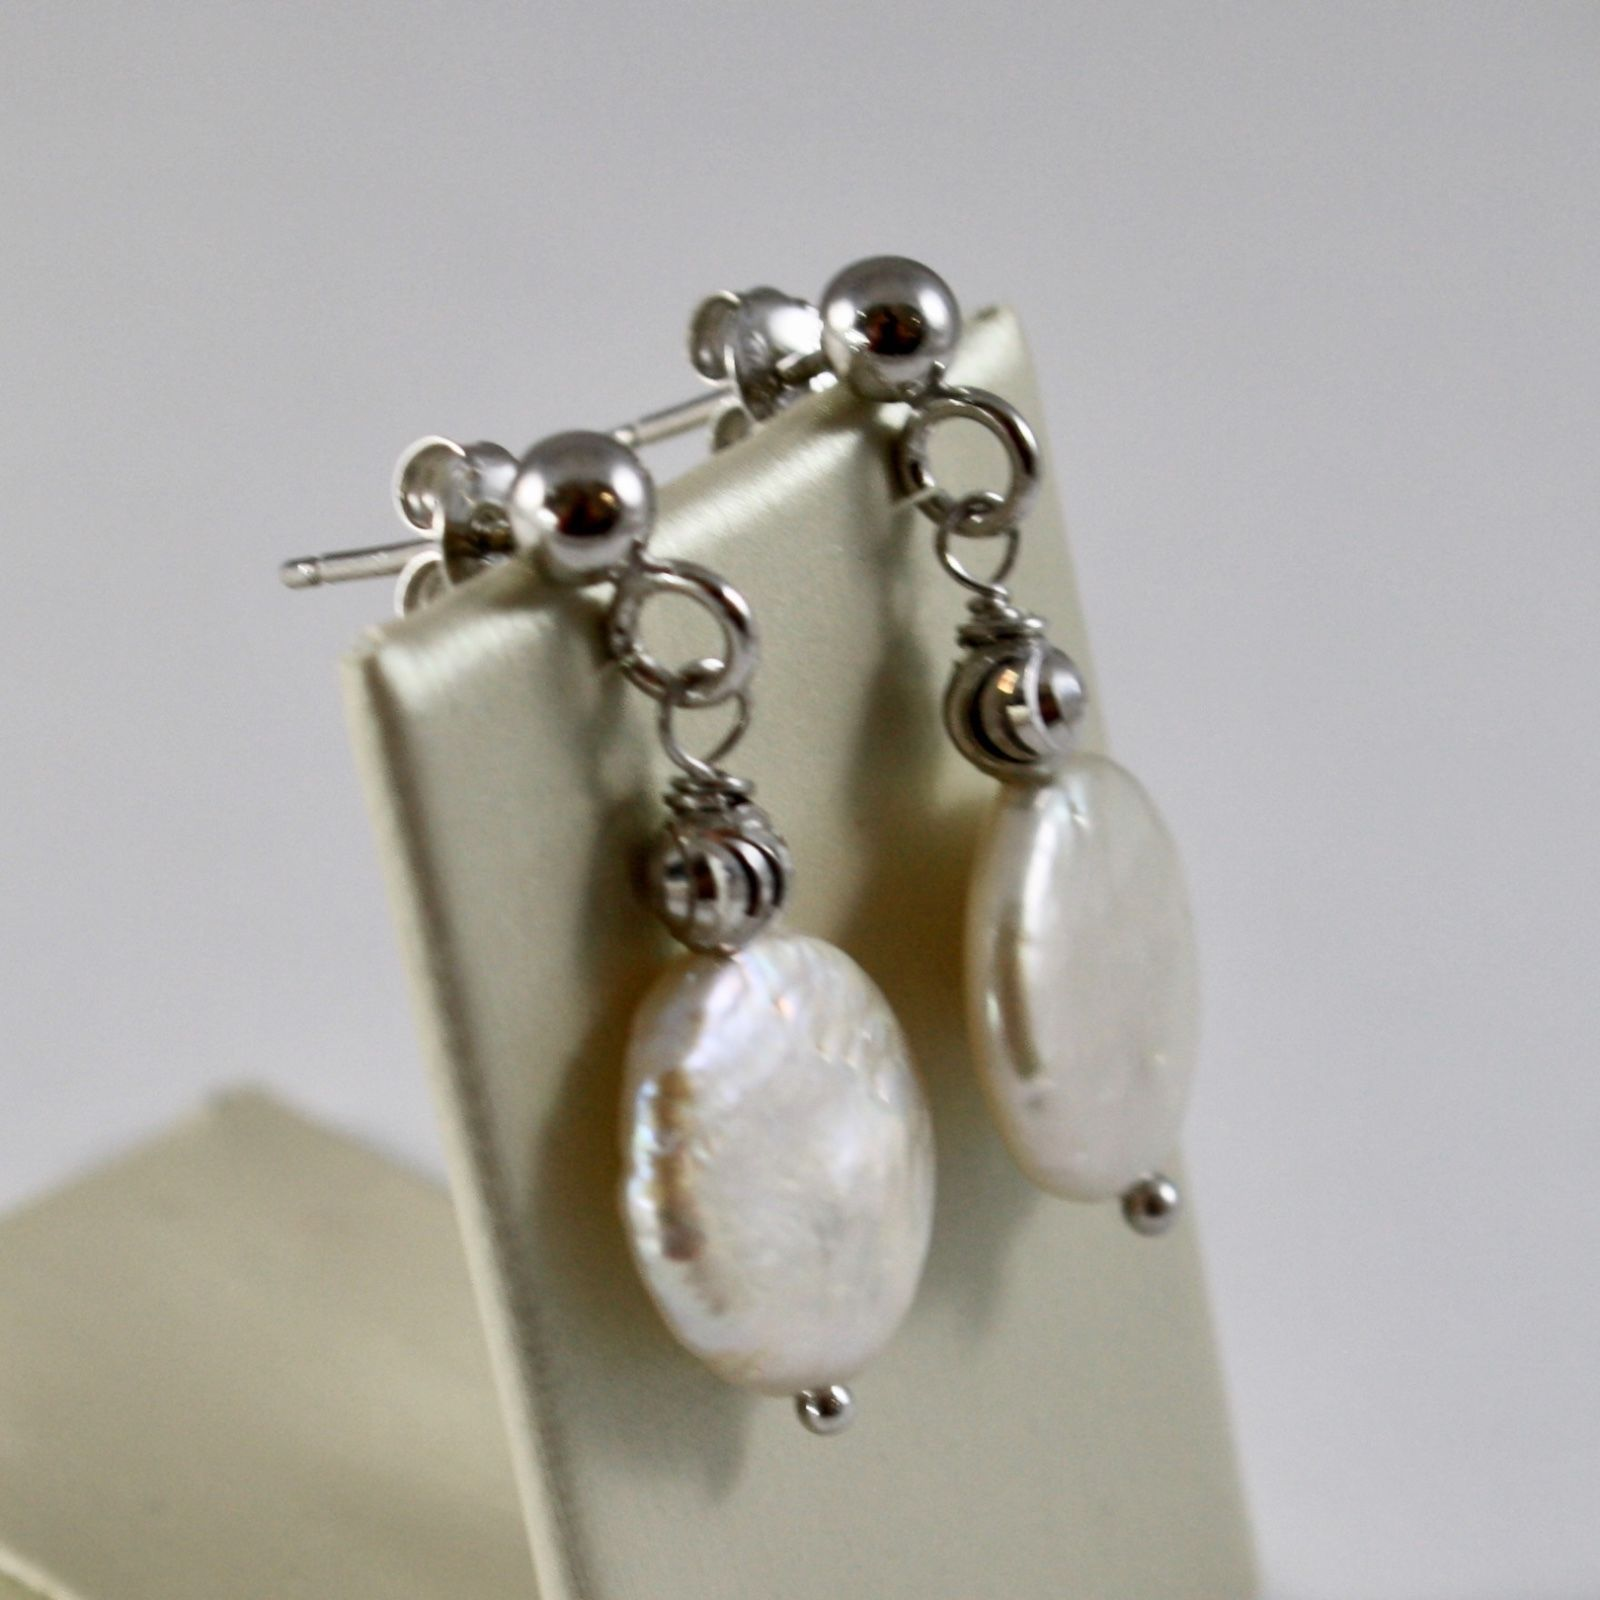 EARRINGS SILVER 925 WITH BEADS FACETED AND PEARLS FLAT WHITE